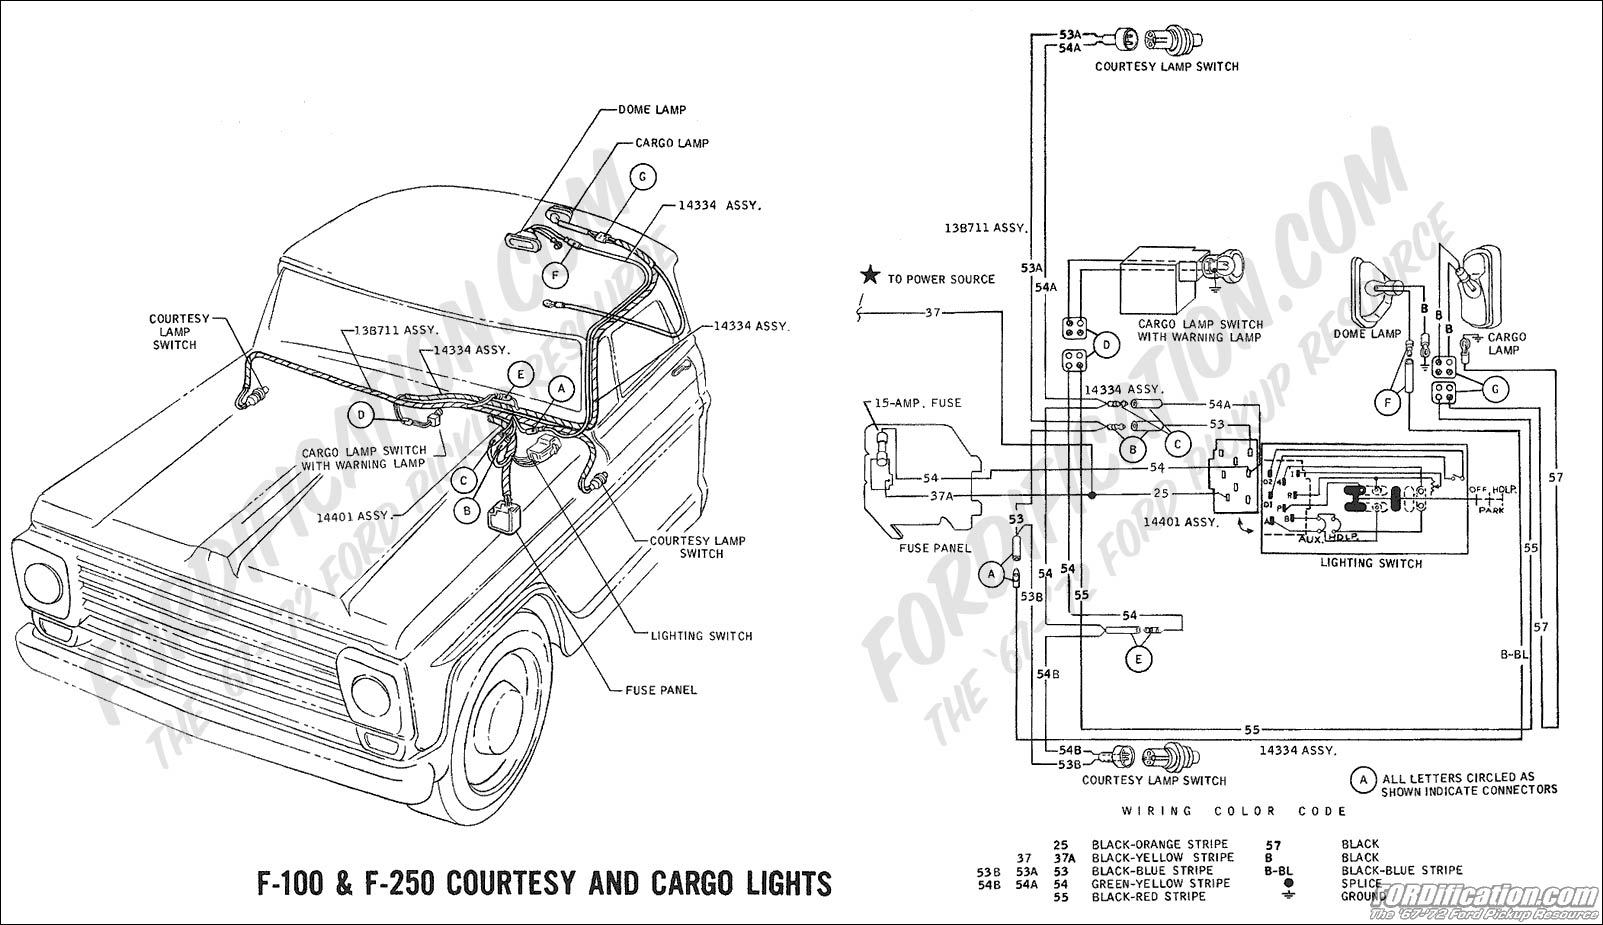 1969 F100 Wiring Diagram Simple Guide About Chevy Truck Turn Signal Ford Technical Drawings And Schematics Section H Rh Fordification Com